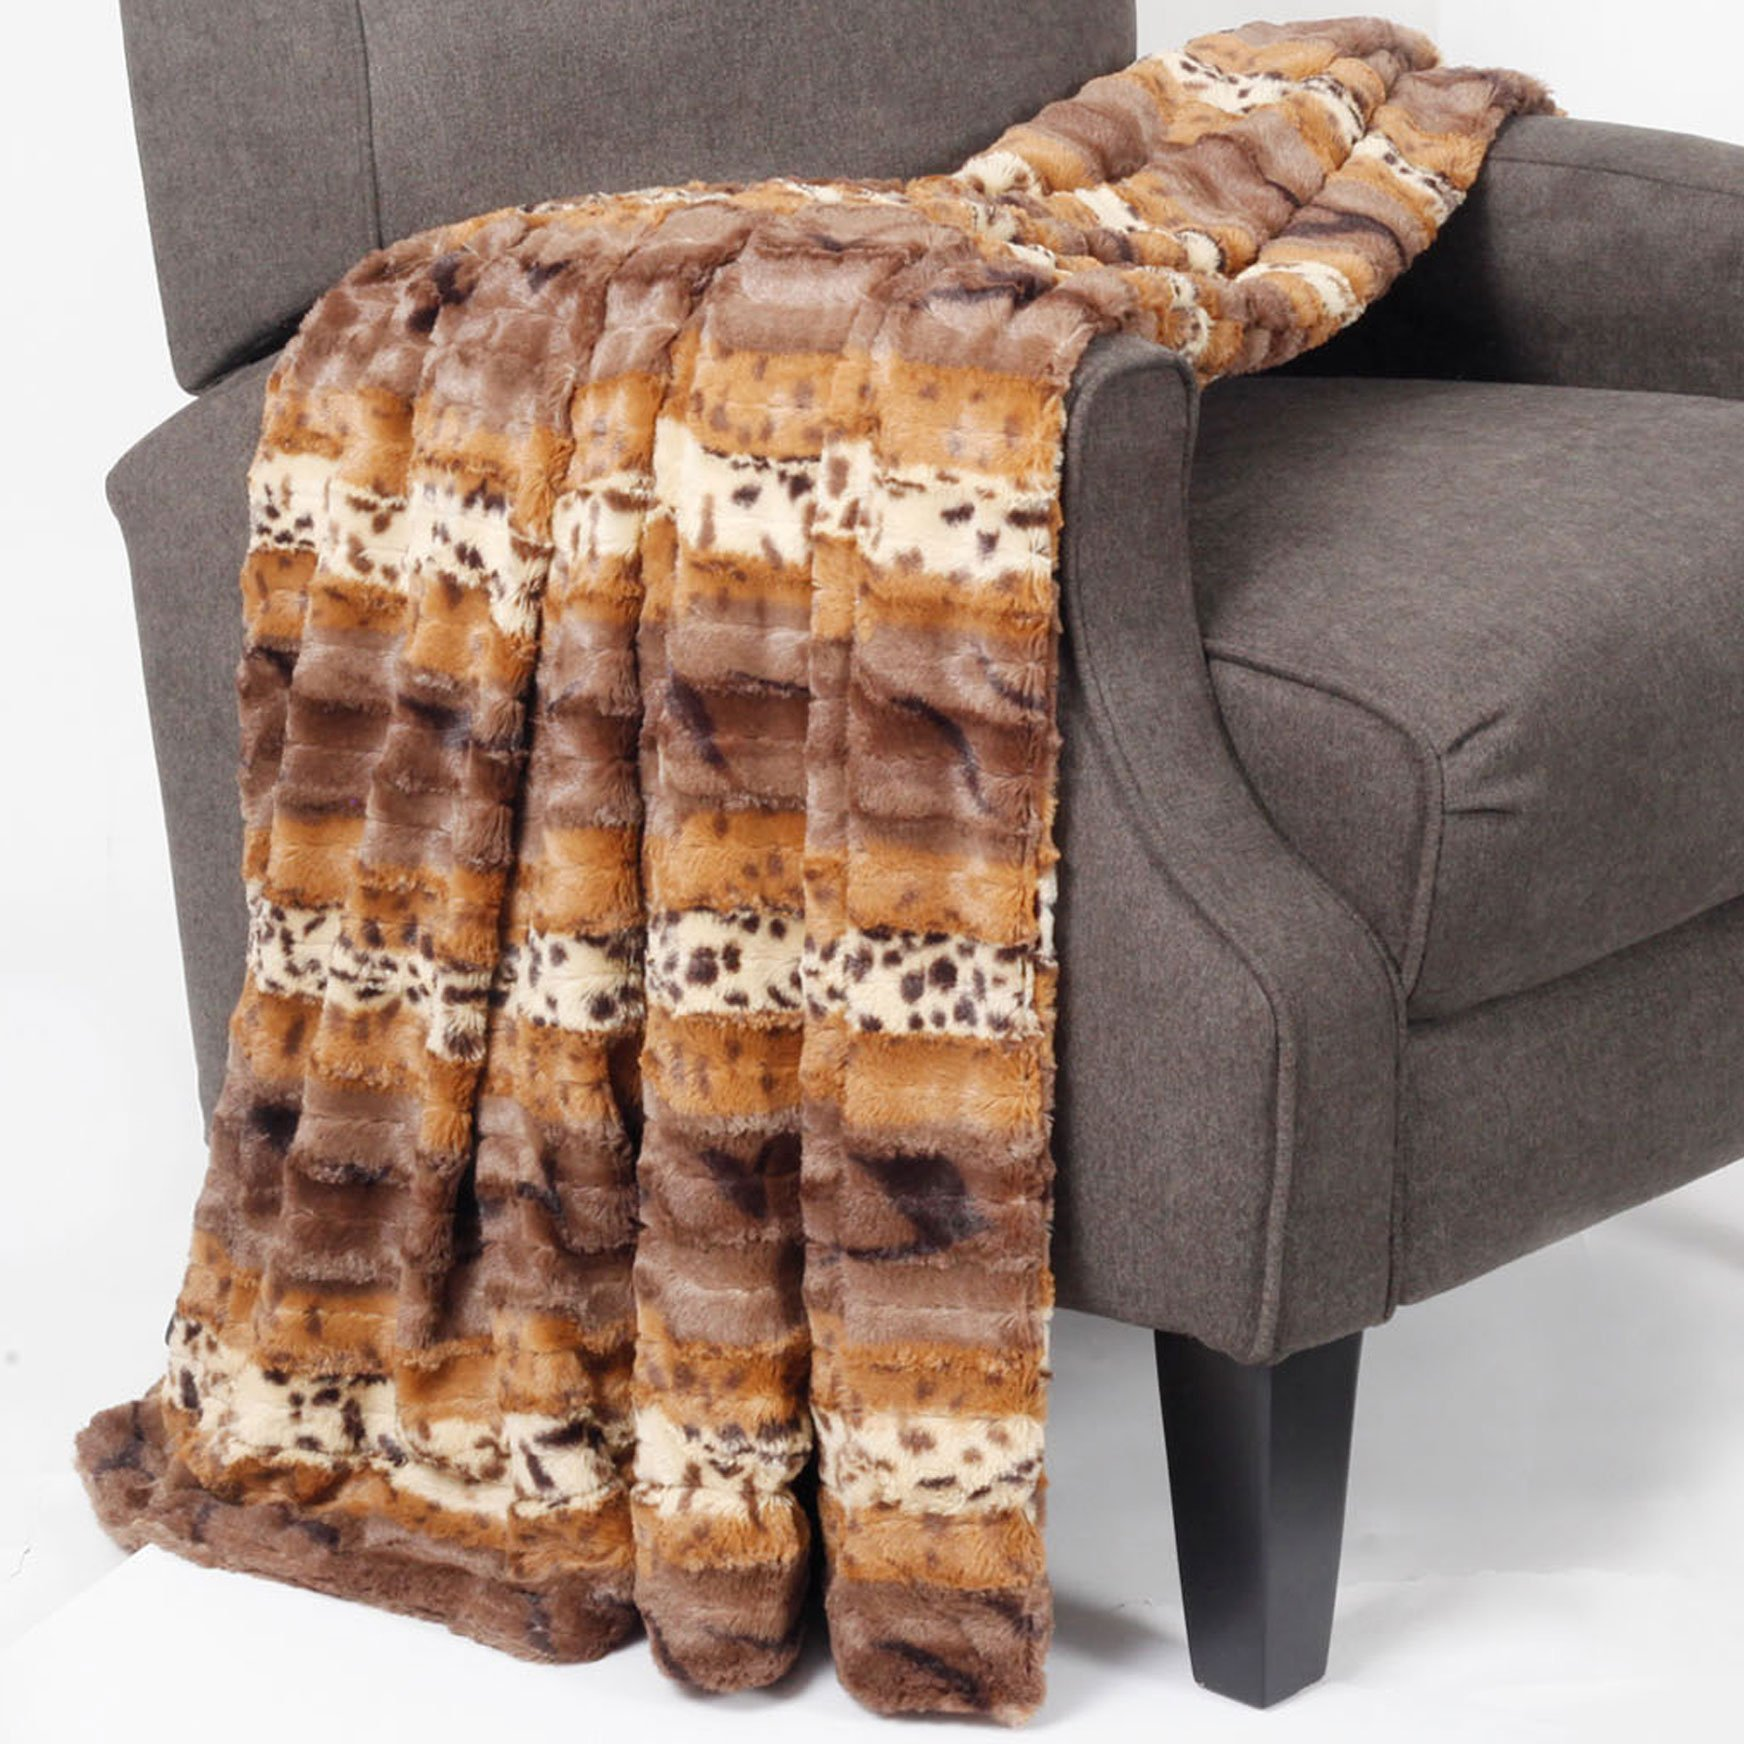 BNF Home Boon Animal Printed Double Sided Faux Fur Throw, 60'' x 80'', Brushed Leopard